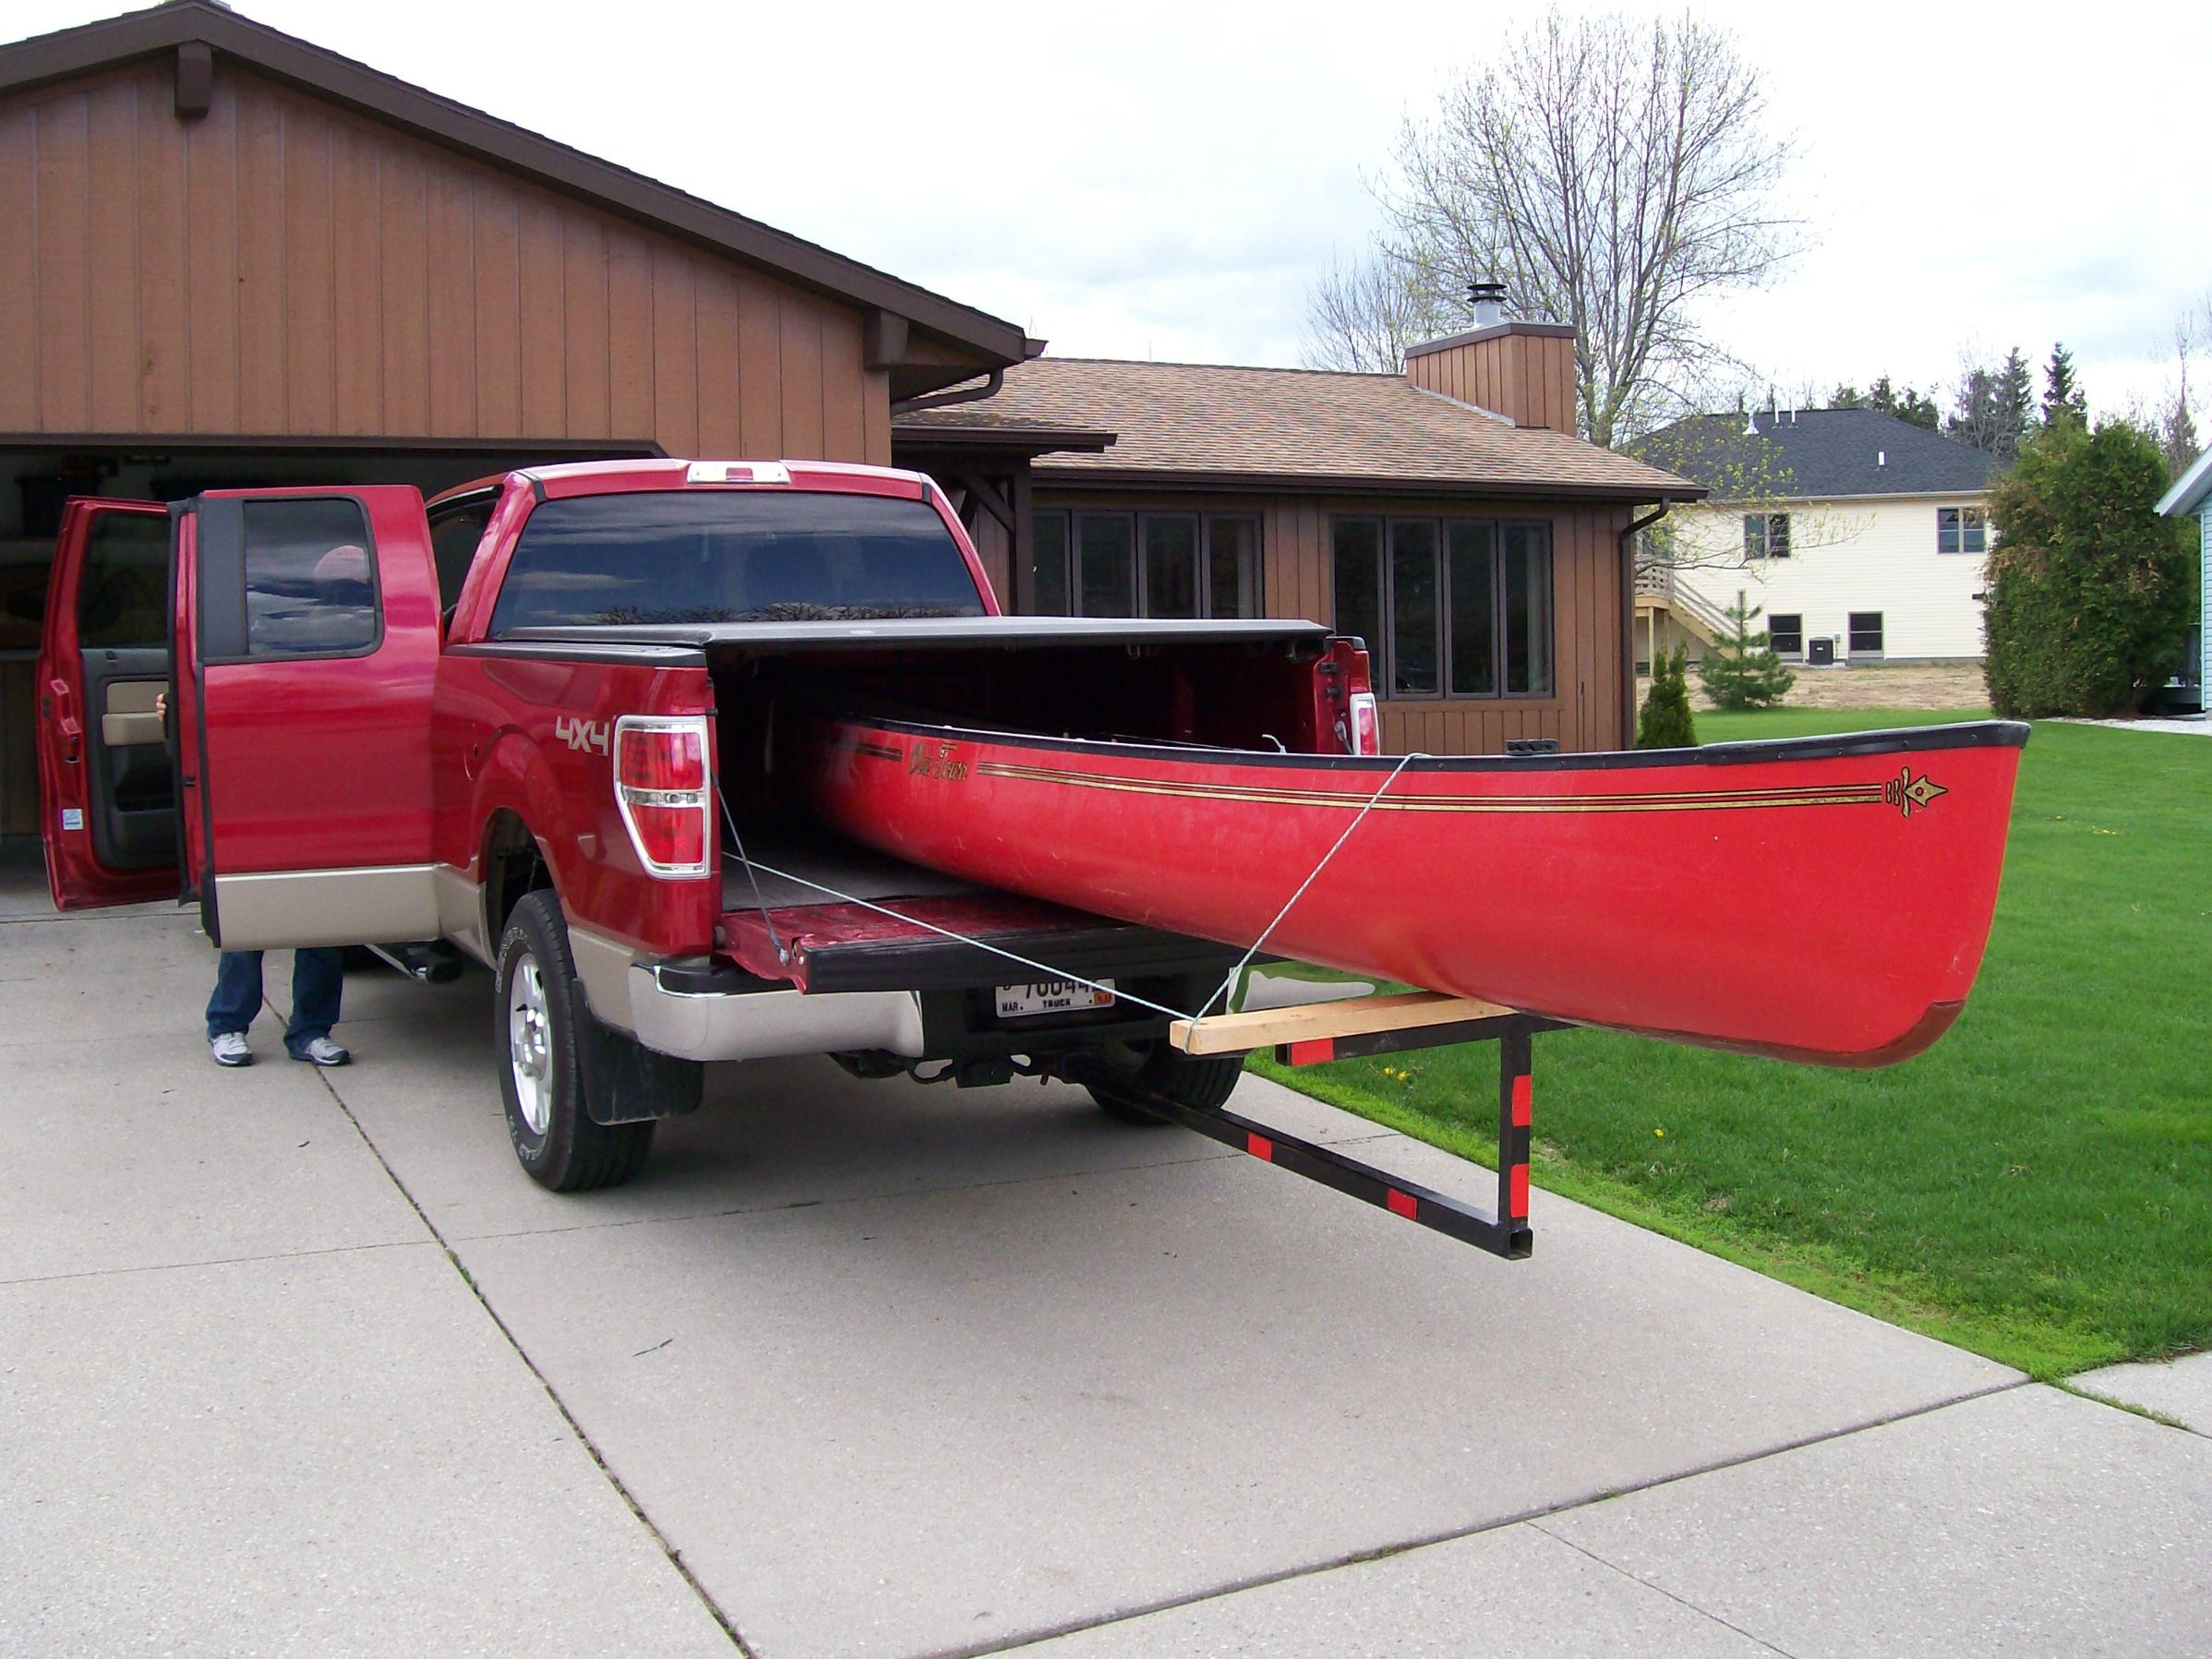 Kayak Roof Rack For Two 12ft Boards In A 6ft Truck Bed - DIY Truck Rack - General ...